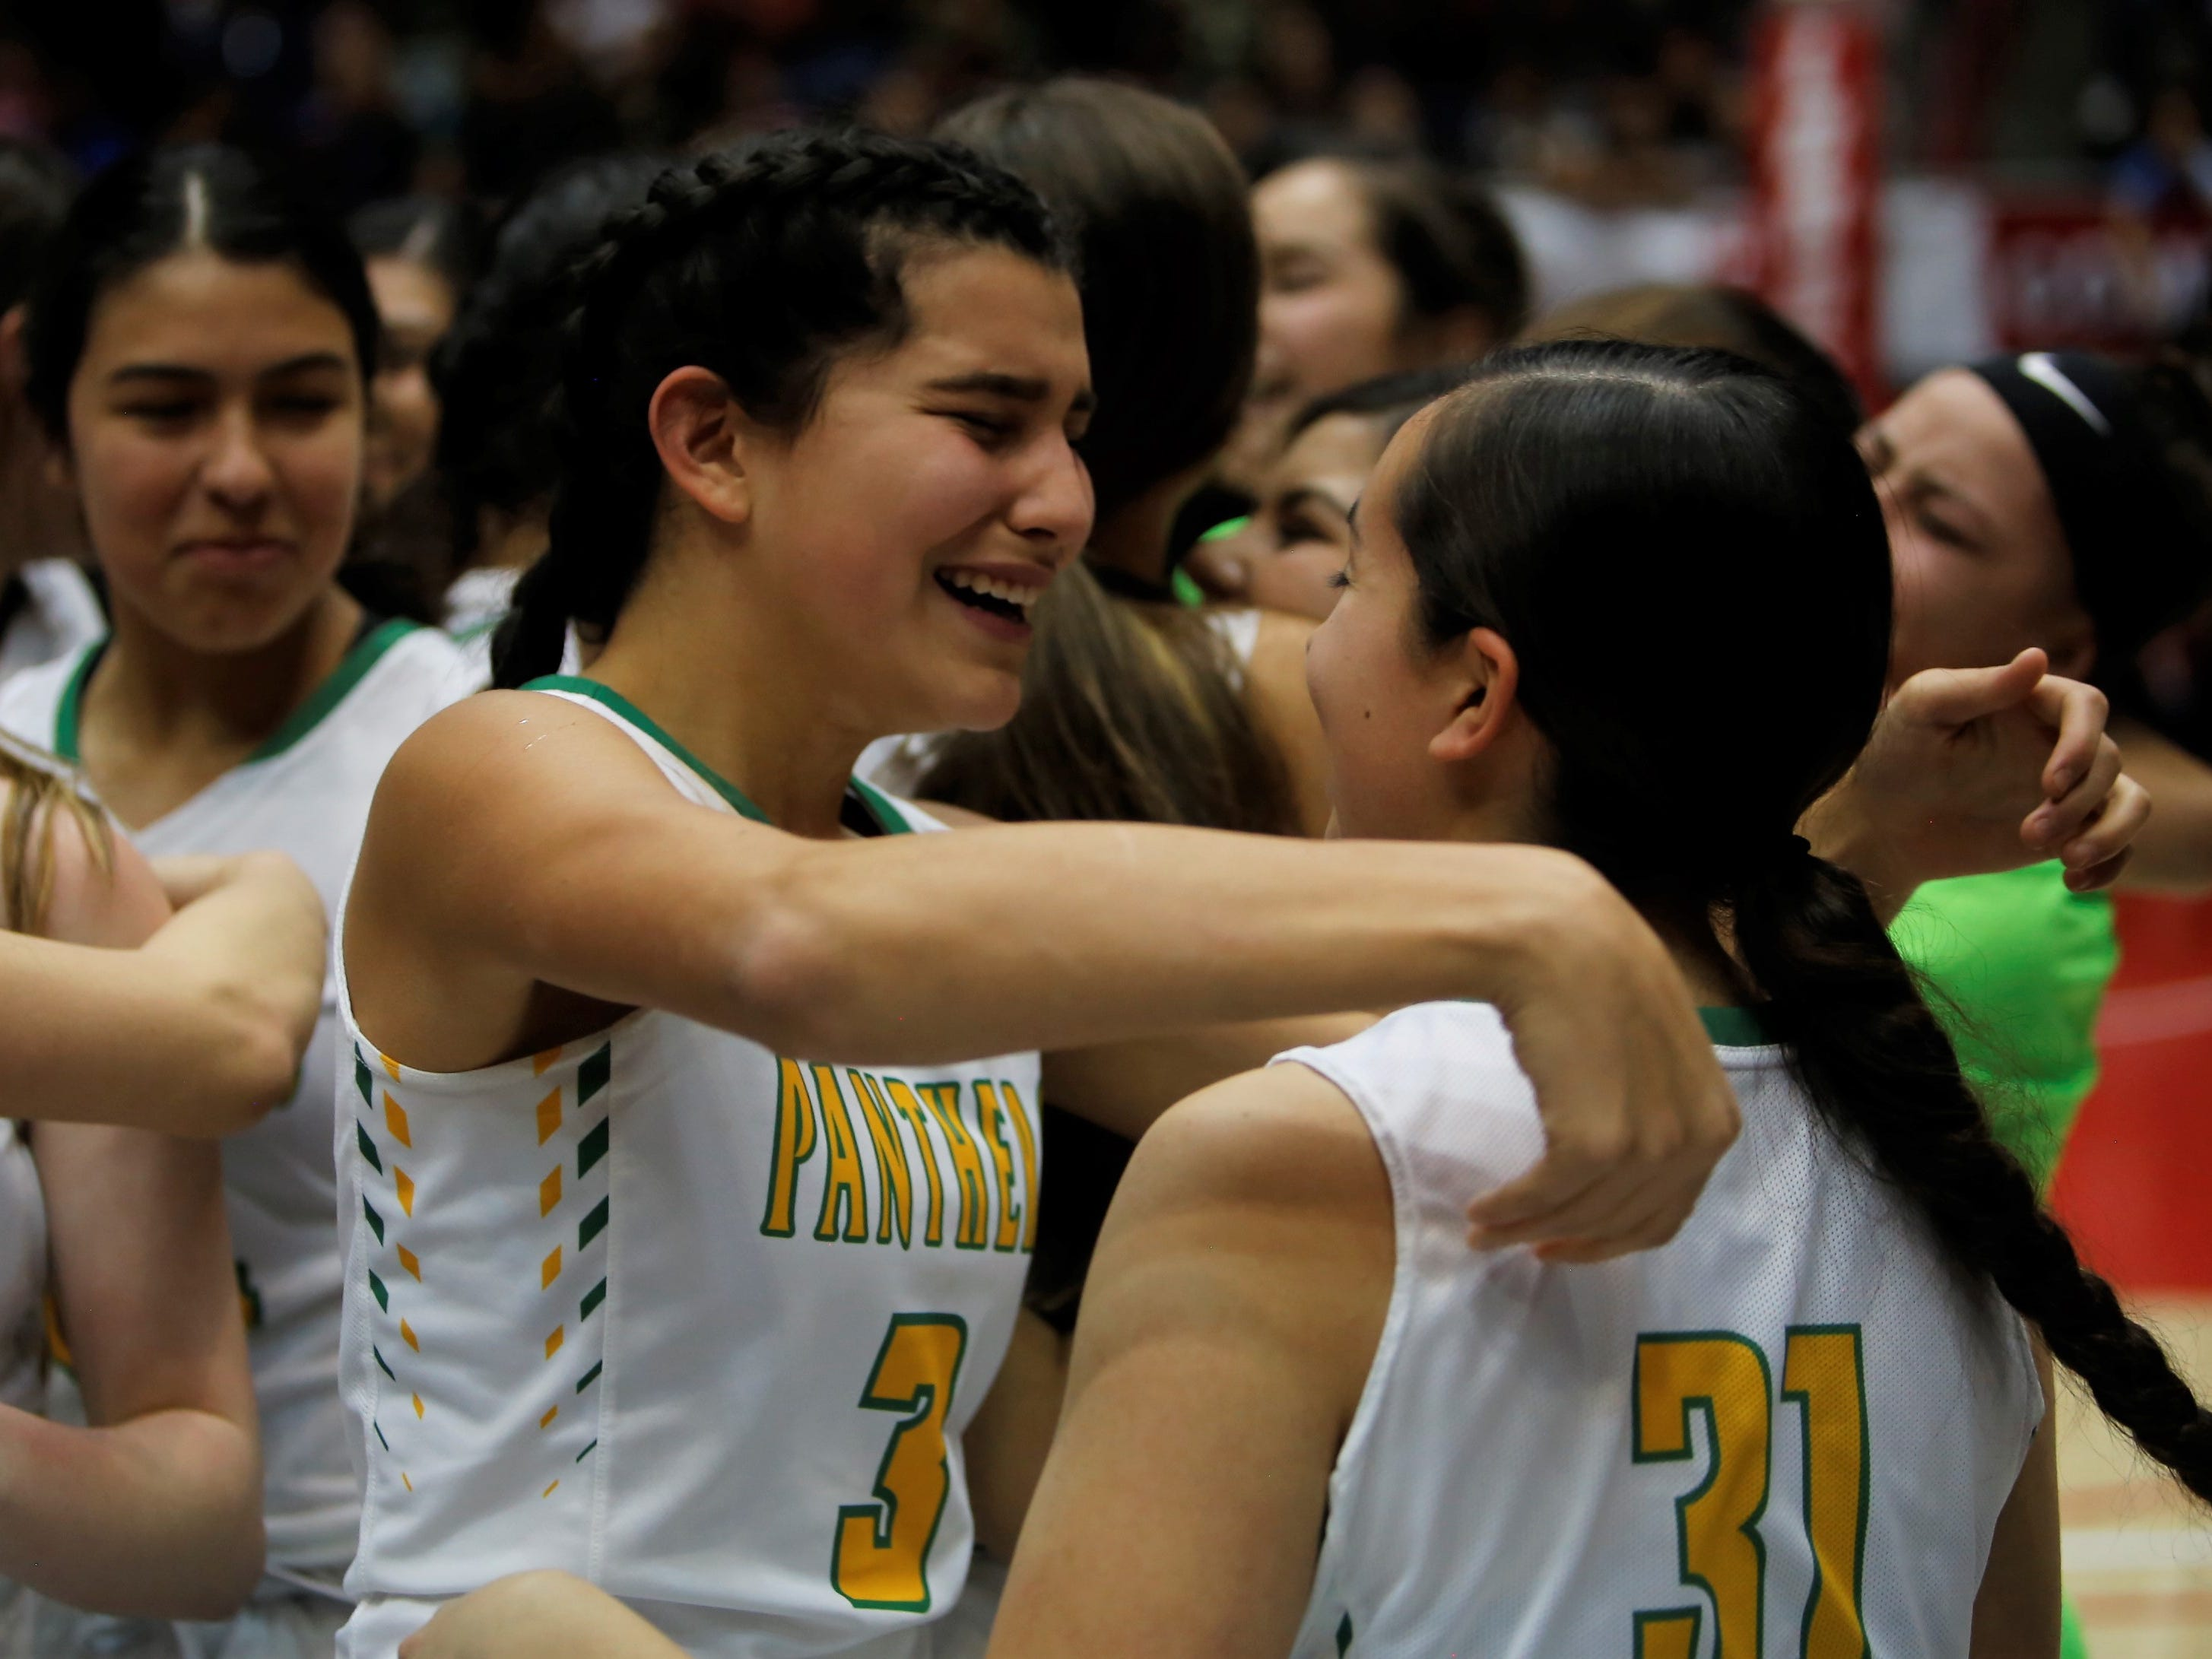 Pecos' MistiDawn Roybal embraces teammate De Anza Dimas after winning Friday's 2A state championship at Dreamstyle Arena in Albuquerque. Pecos defeated Mescalero Apache, 53-46 in overtime.